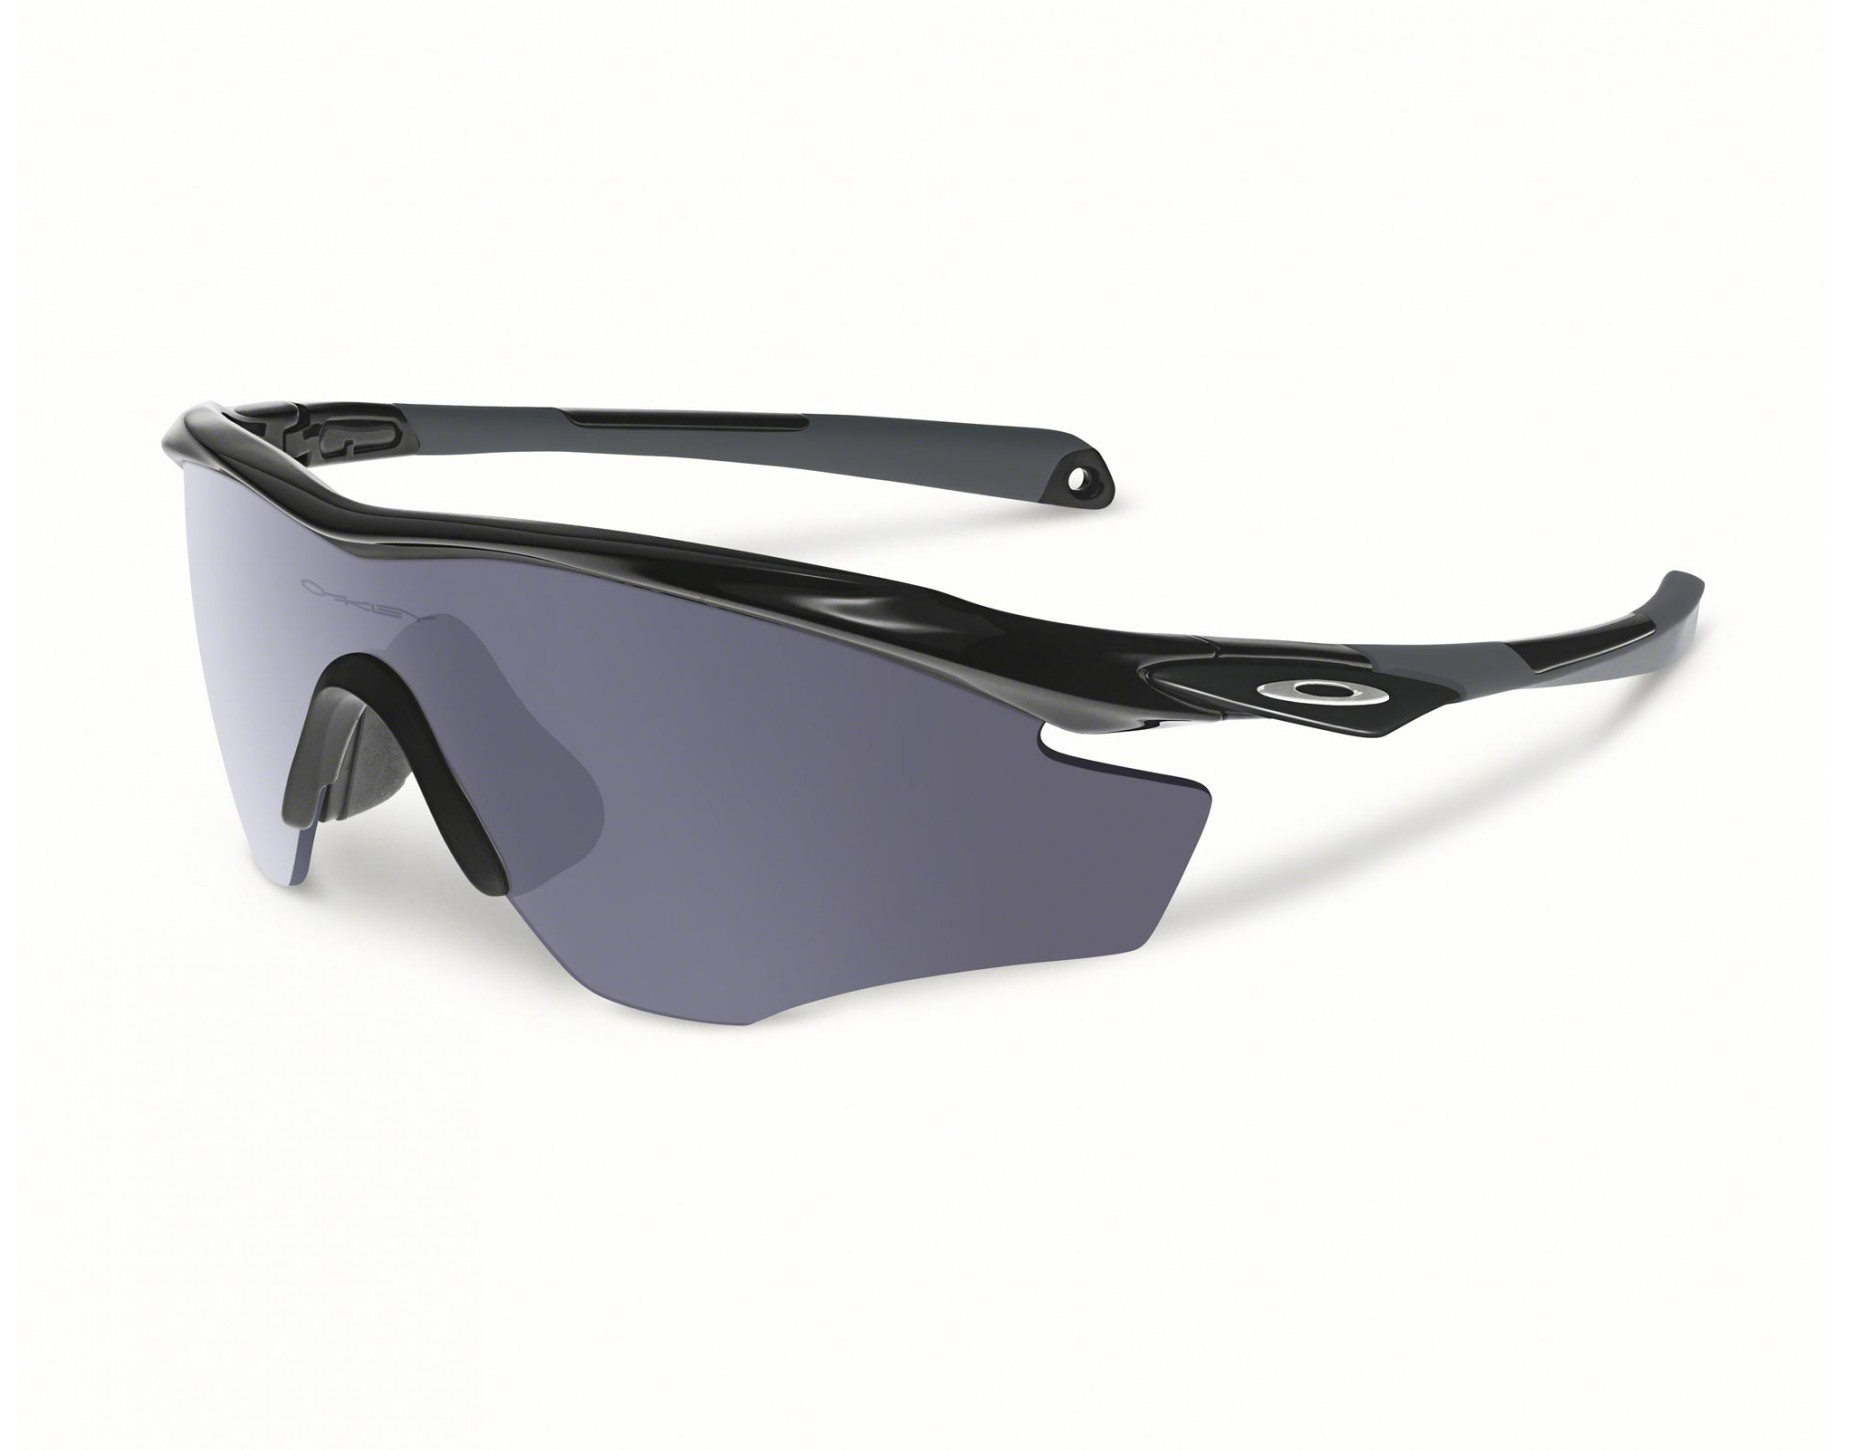 Frame Glasses Xl : OAKLEY M2 FRAME XL sports glasses everything you need ...